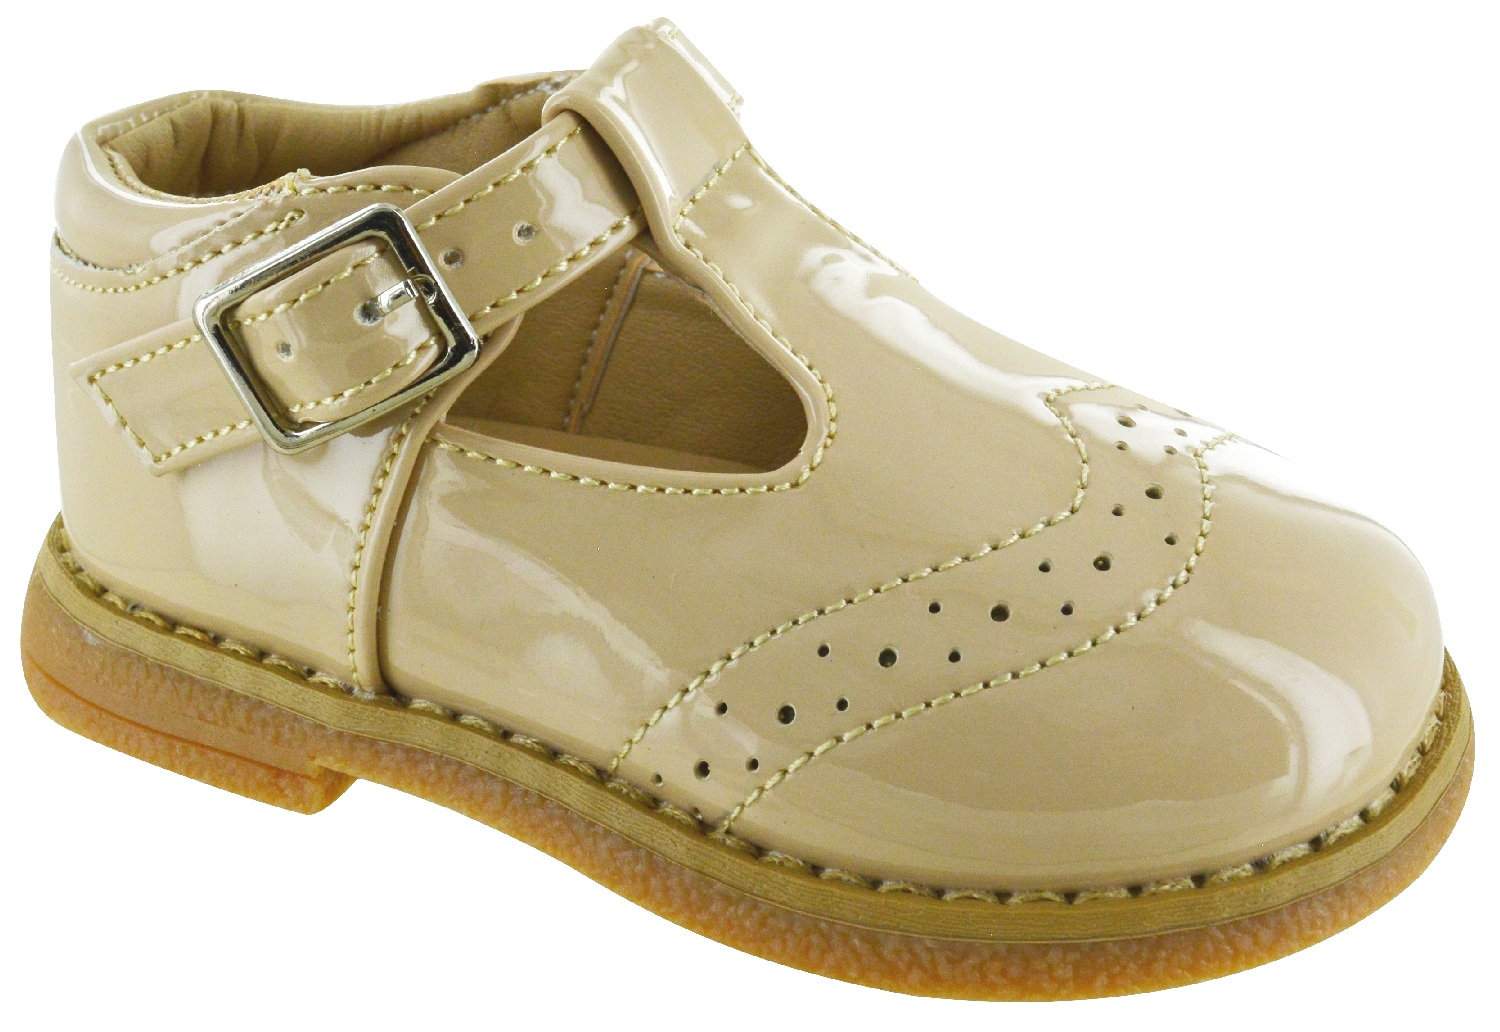 KIDS BABY INFANTS CHILDRENS SPANISH BUCKLE FLAT WEDDING PARTY TOODLER SHOES SIZE